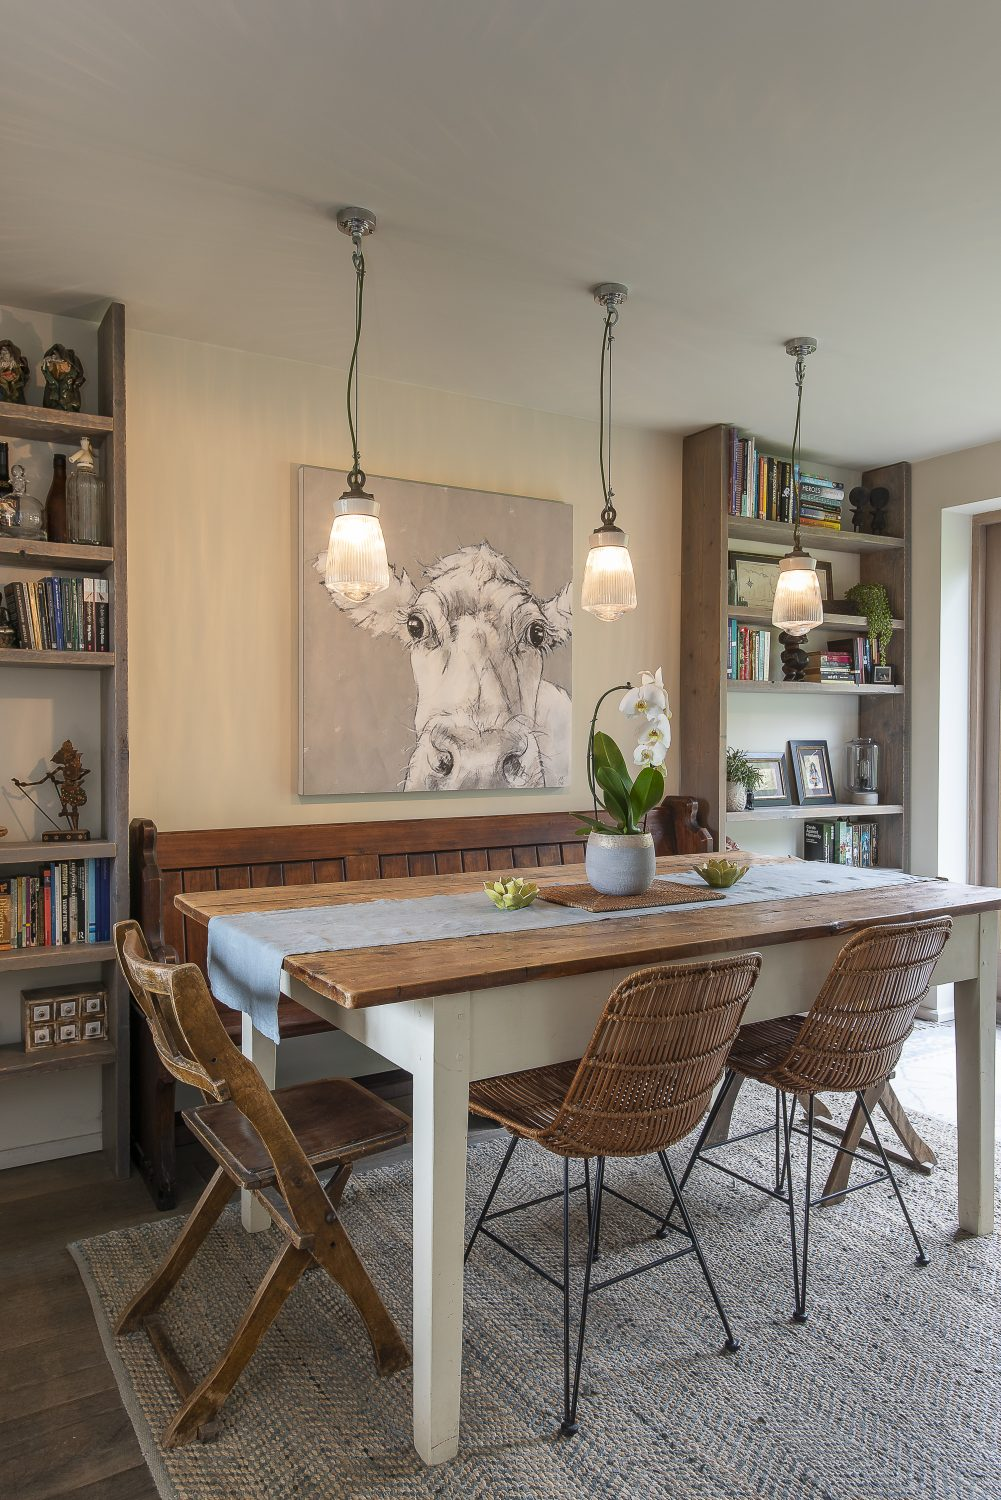 What was once the garage space was further opened up to create a spacious dining area